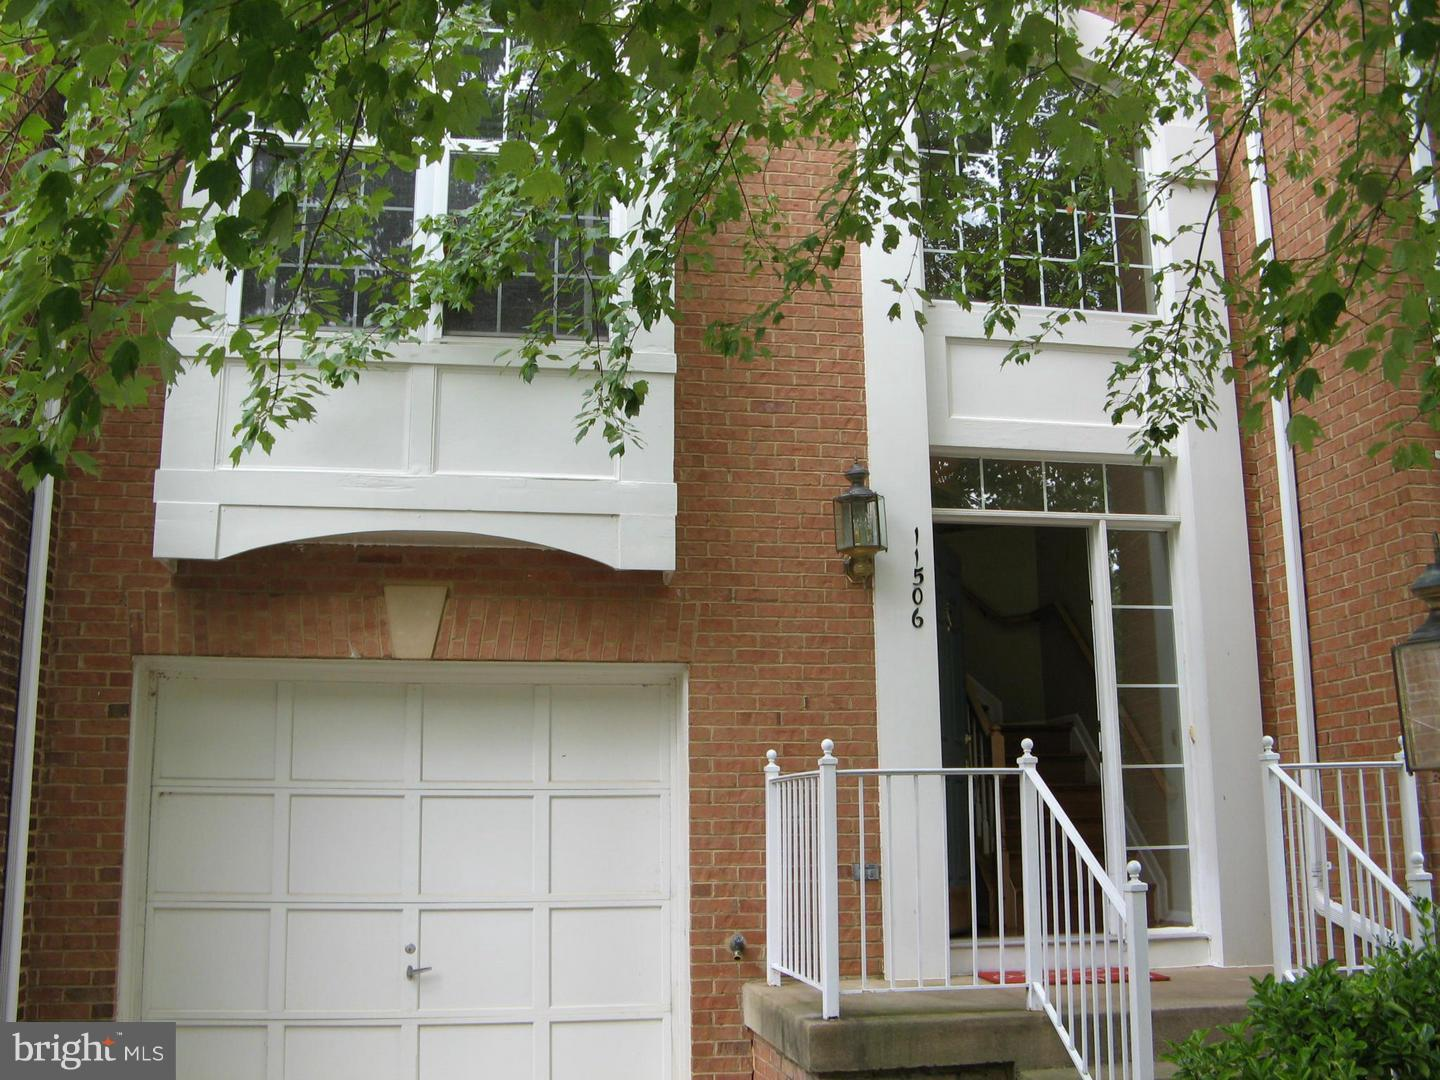 "ELEGANT BRICK FRONT GARAGE TOWNHOME IN NORTH RESTON offering 3 beautiful finished levels "" BUMP OUT"". 2 story foyer+9' ceiling on main floor. Spacious kitchen with Breakfast room next to family room. Gas fireplace, Hardwood floor. Wonderful master suite with cathedral ceiling, Walk-in closet and luxury bath with two person tub and separate shower. Large walkout basement with den."